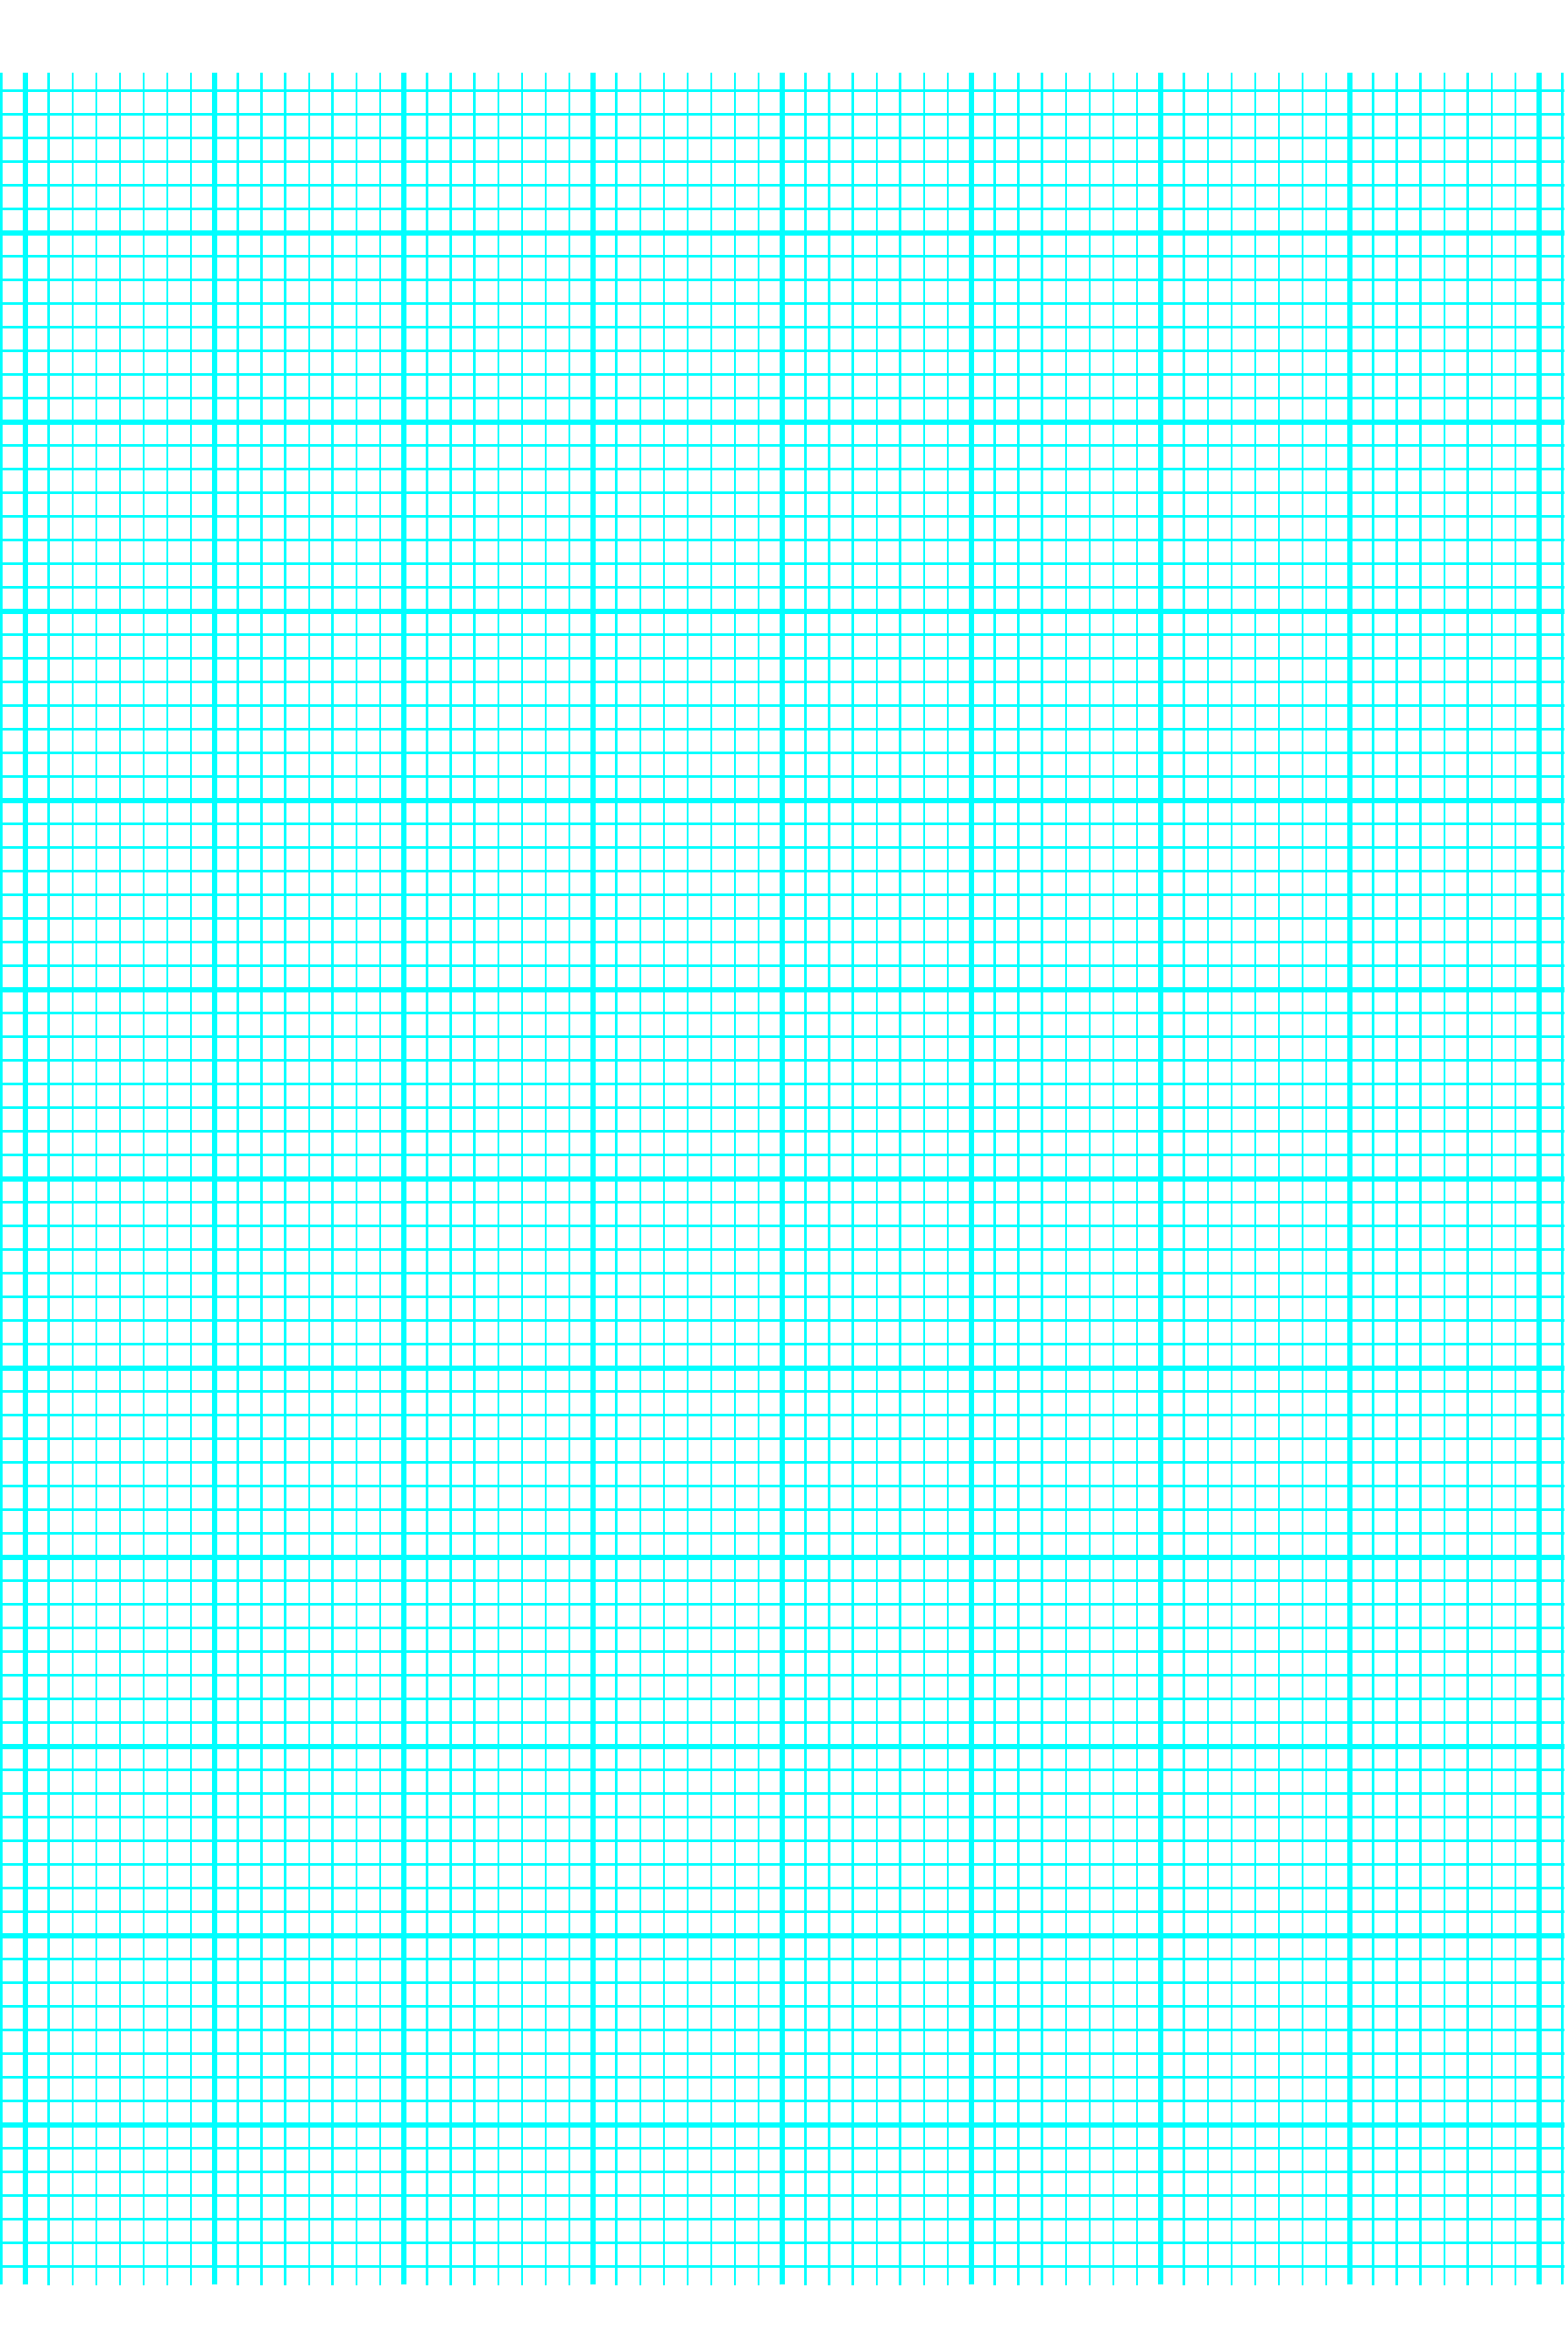 8 Lines Per Inch Graph Paper On A4 Sized Paper Heavy